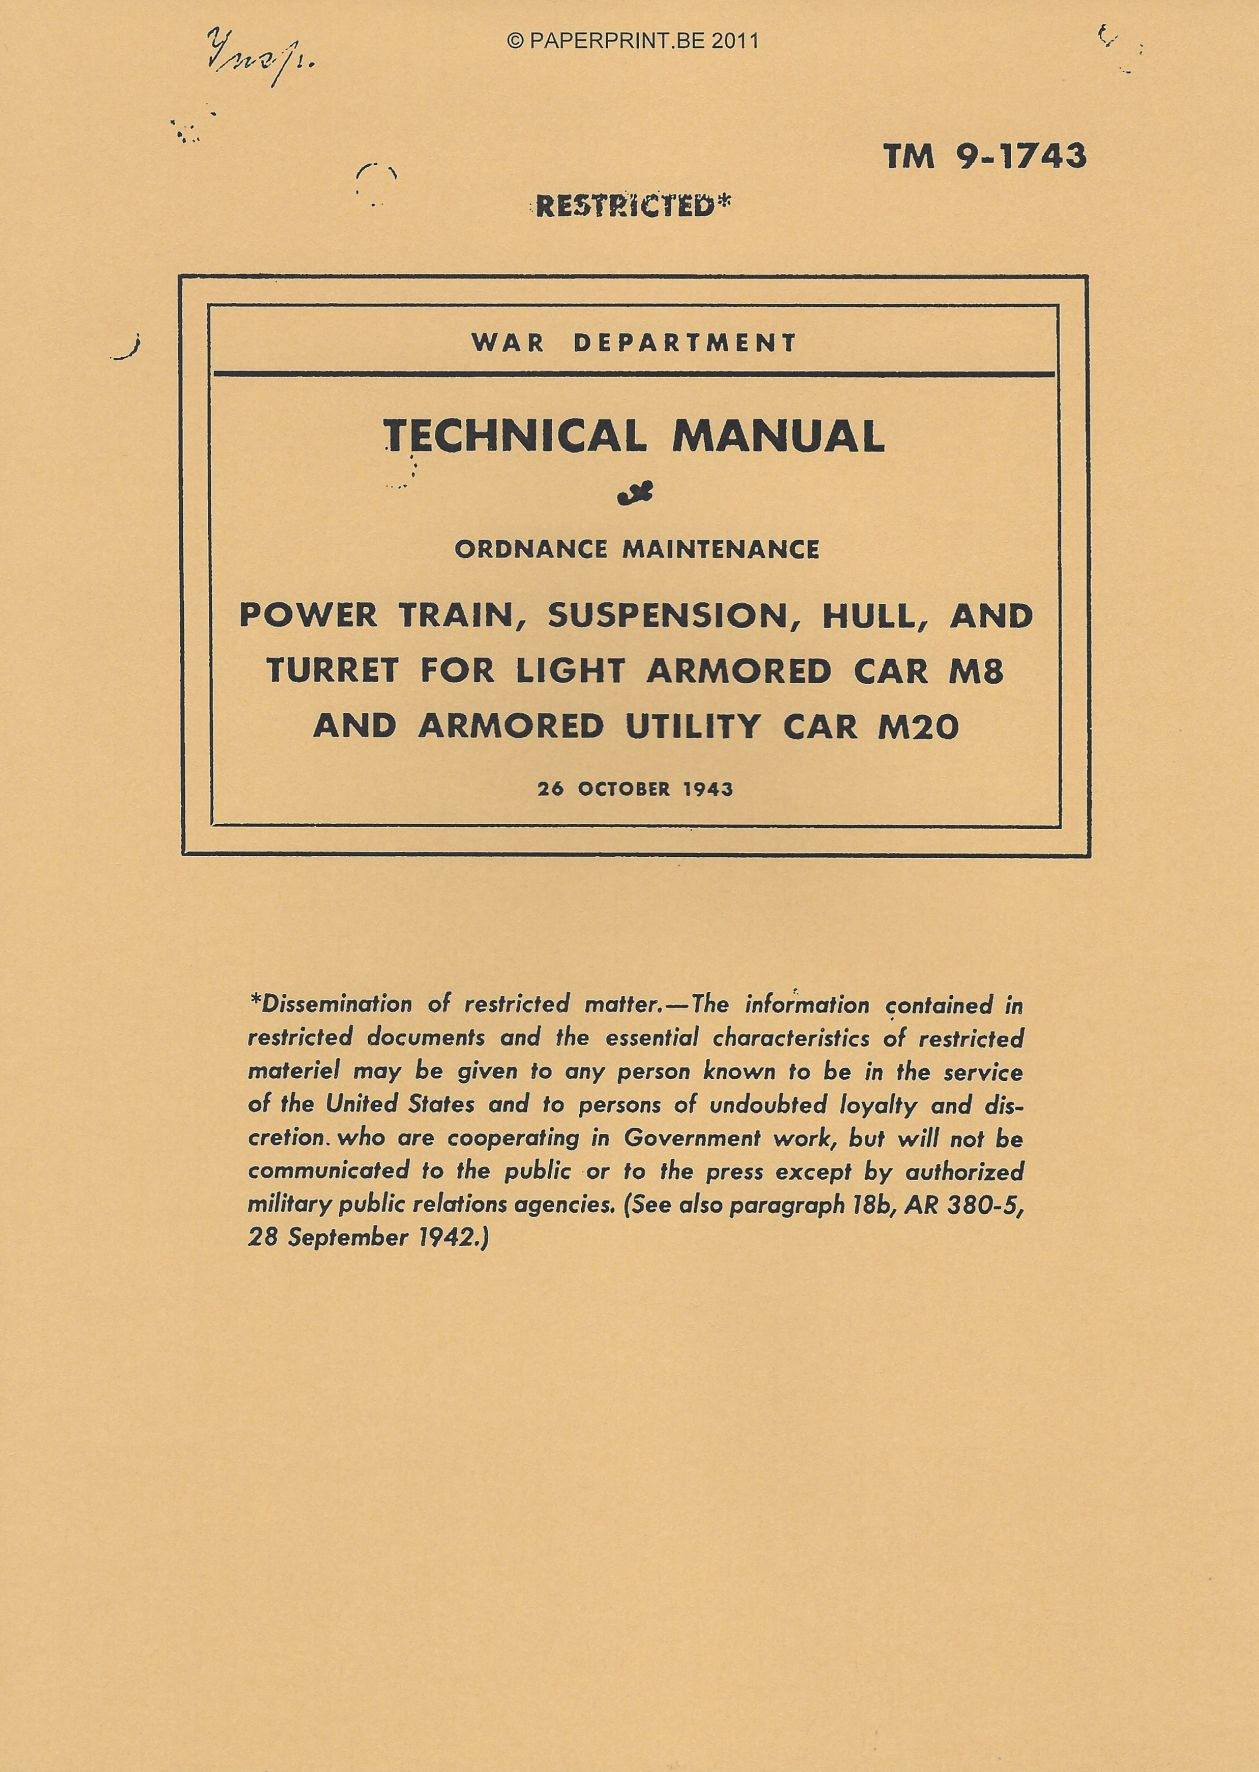 TM 9-1743 US POWER TRAIN, SUSPENSION, HULL, AND TURRET FOR LIGHT ARMORED CAR M8 AND ARMORED UTILITY CAR M20